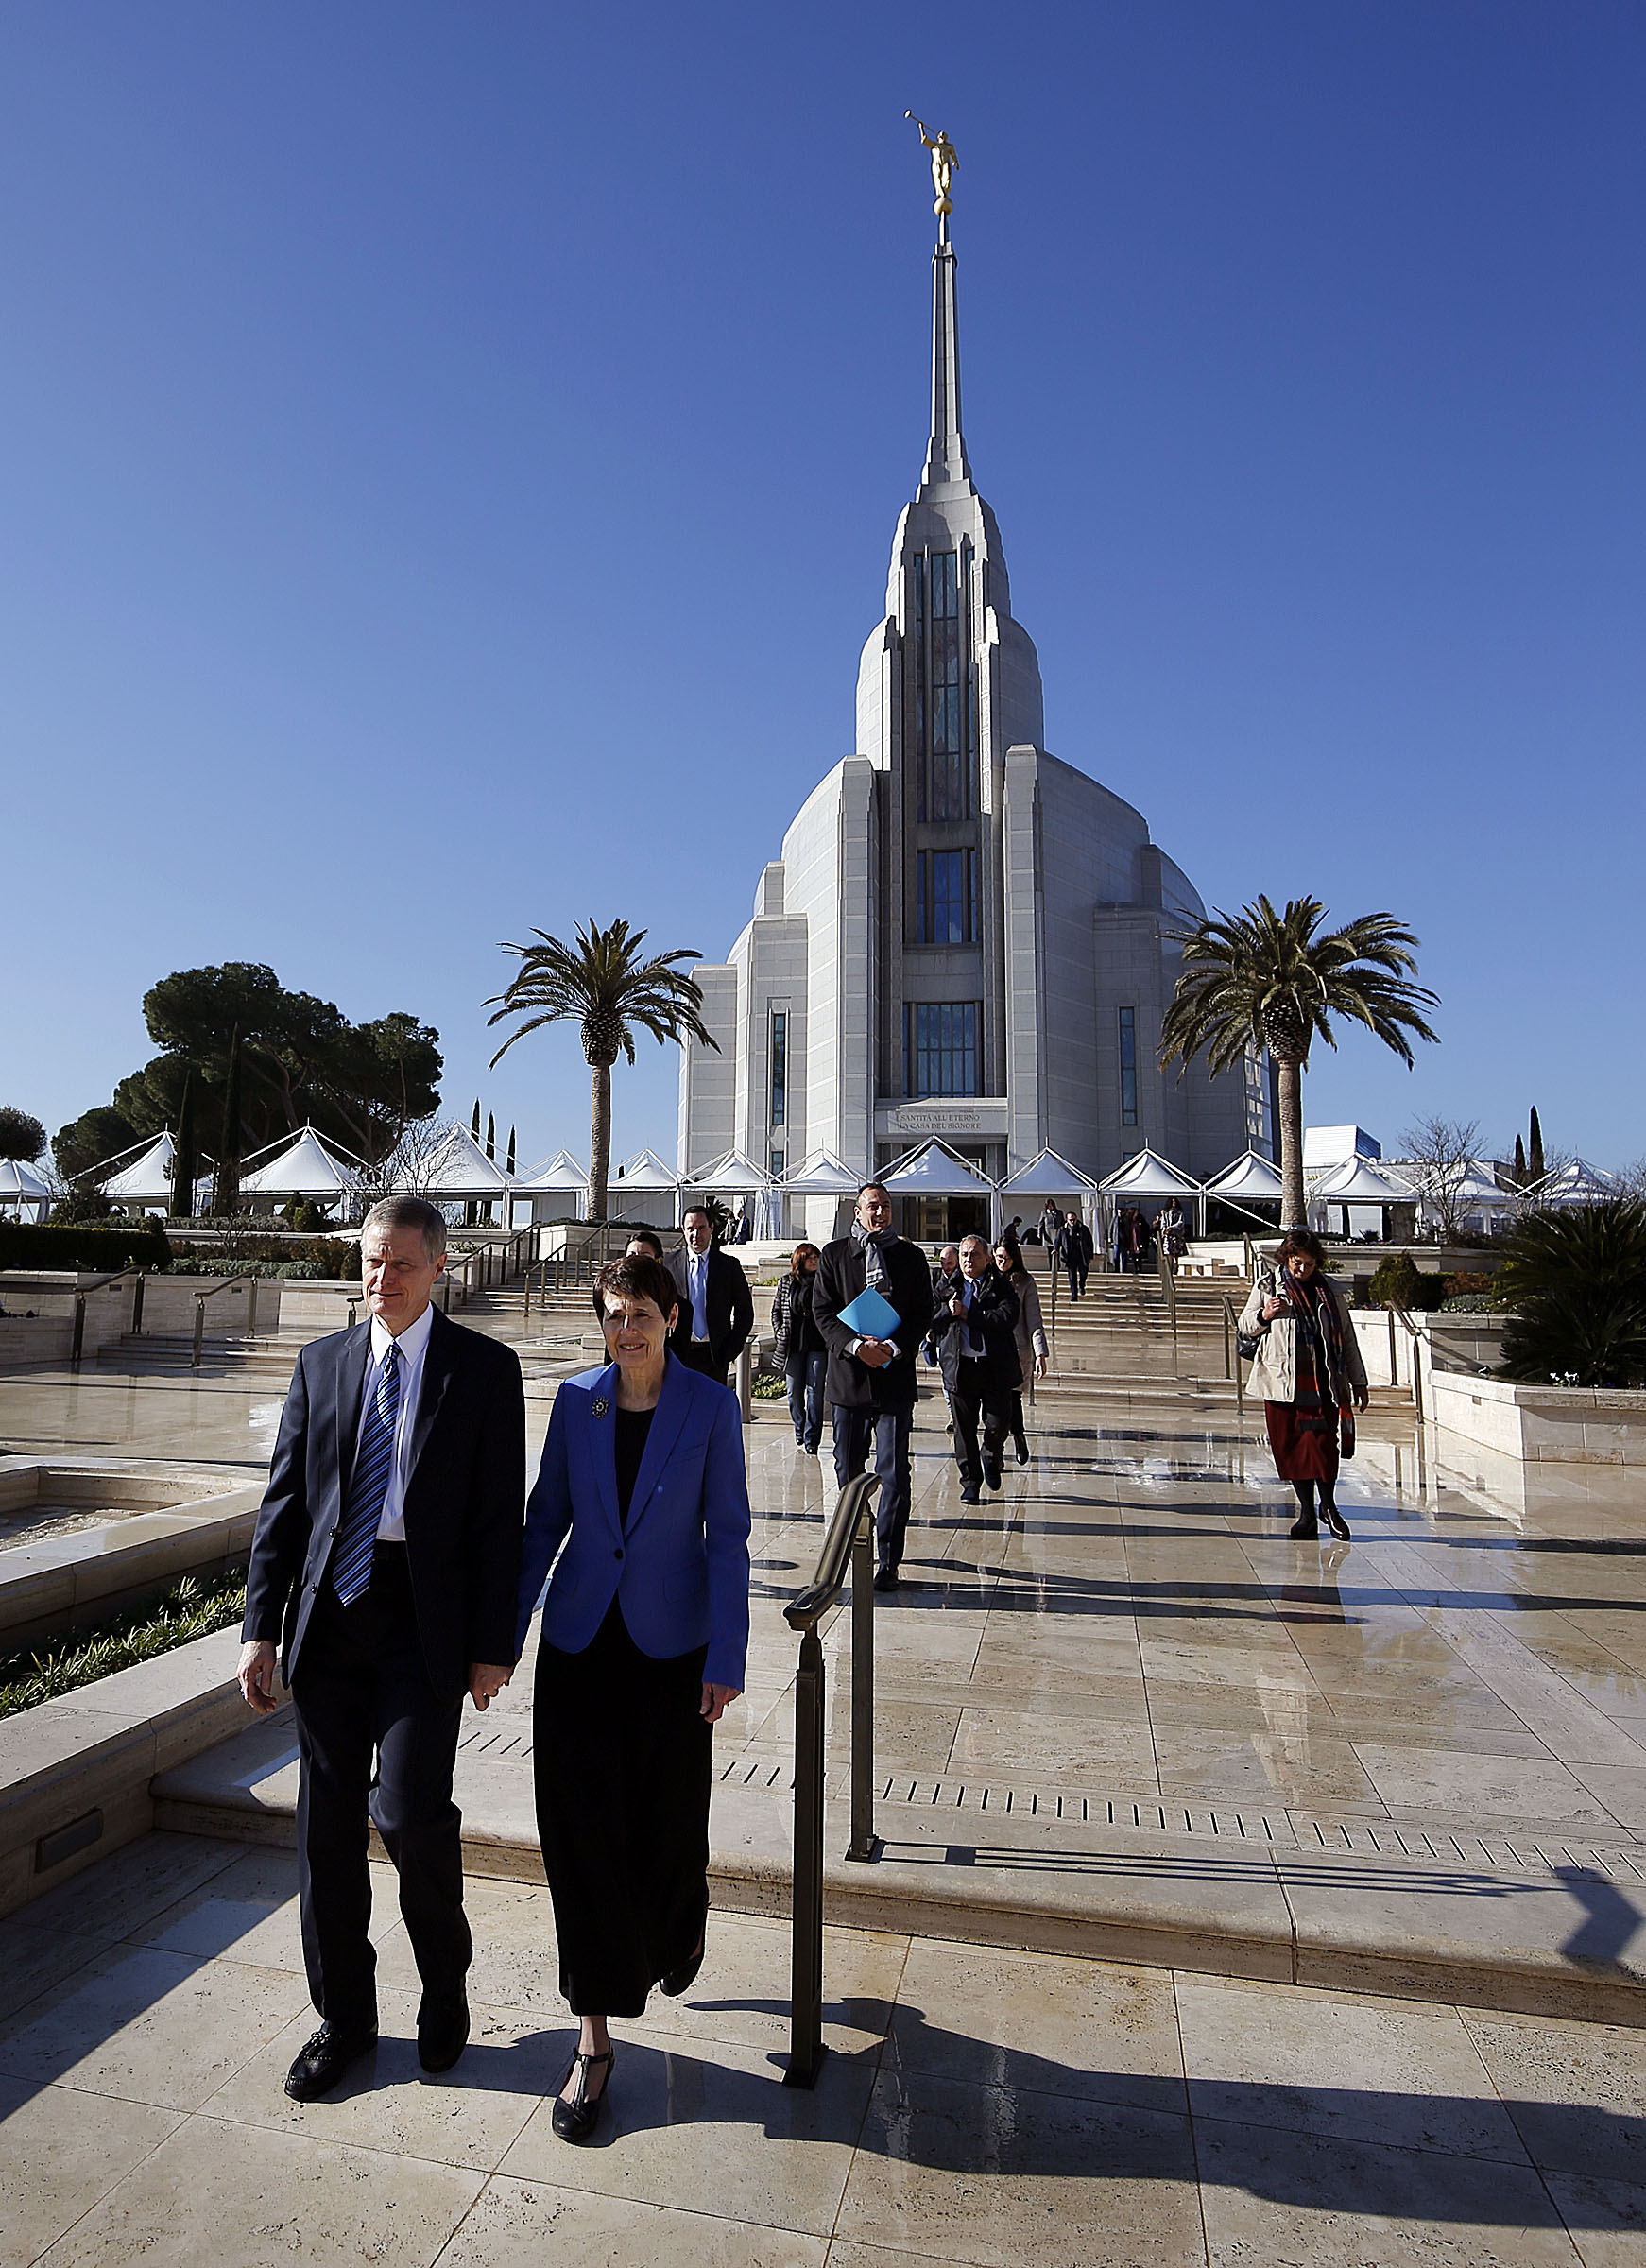 Elder David A. Bednar of the Quorum of the Twelve Apostles and his wife Susan walk from the Rome Italy Temple to the Rome Temple Visitor's Center of The Church of Jesus Christ of Latter-day Saints on Monday, Jan. 14, 2019. Rome City officials and other dignitaries follow behind.